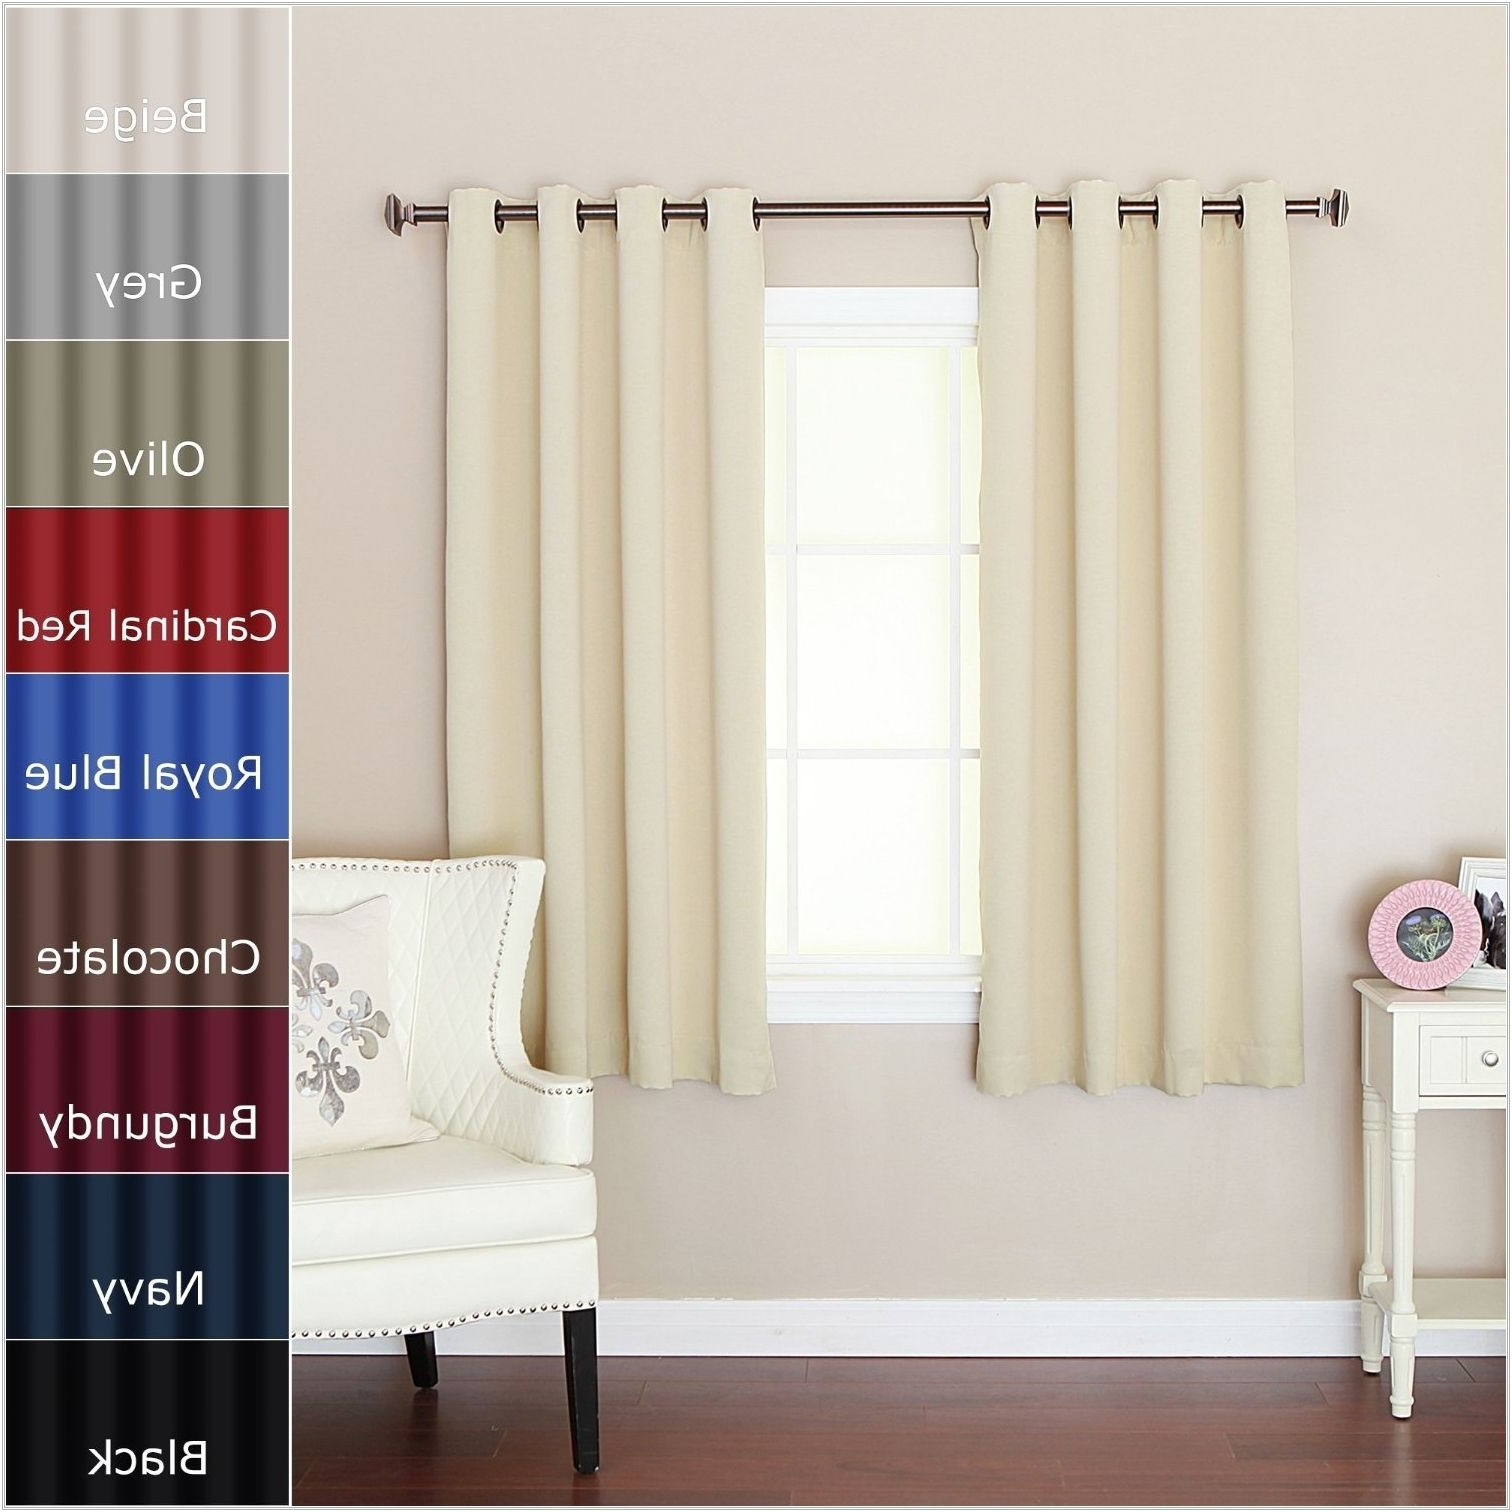 Trendy Blackout Curtains For Short Wide Windows (View 18 of 20)